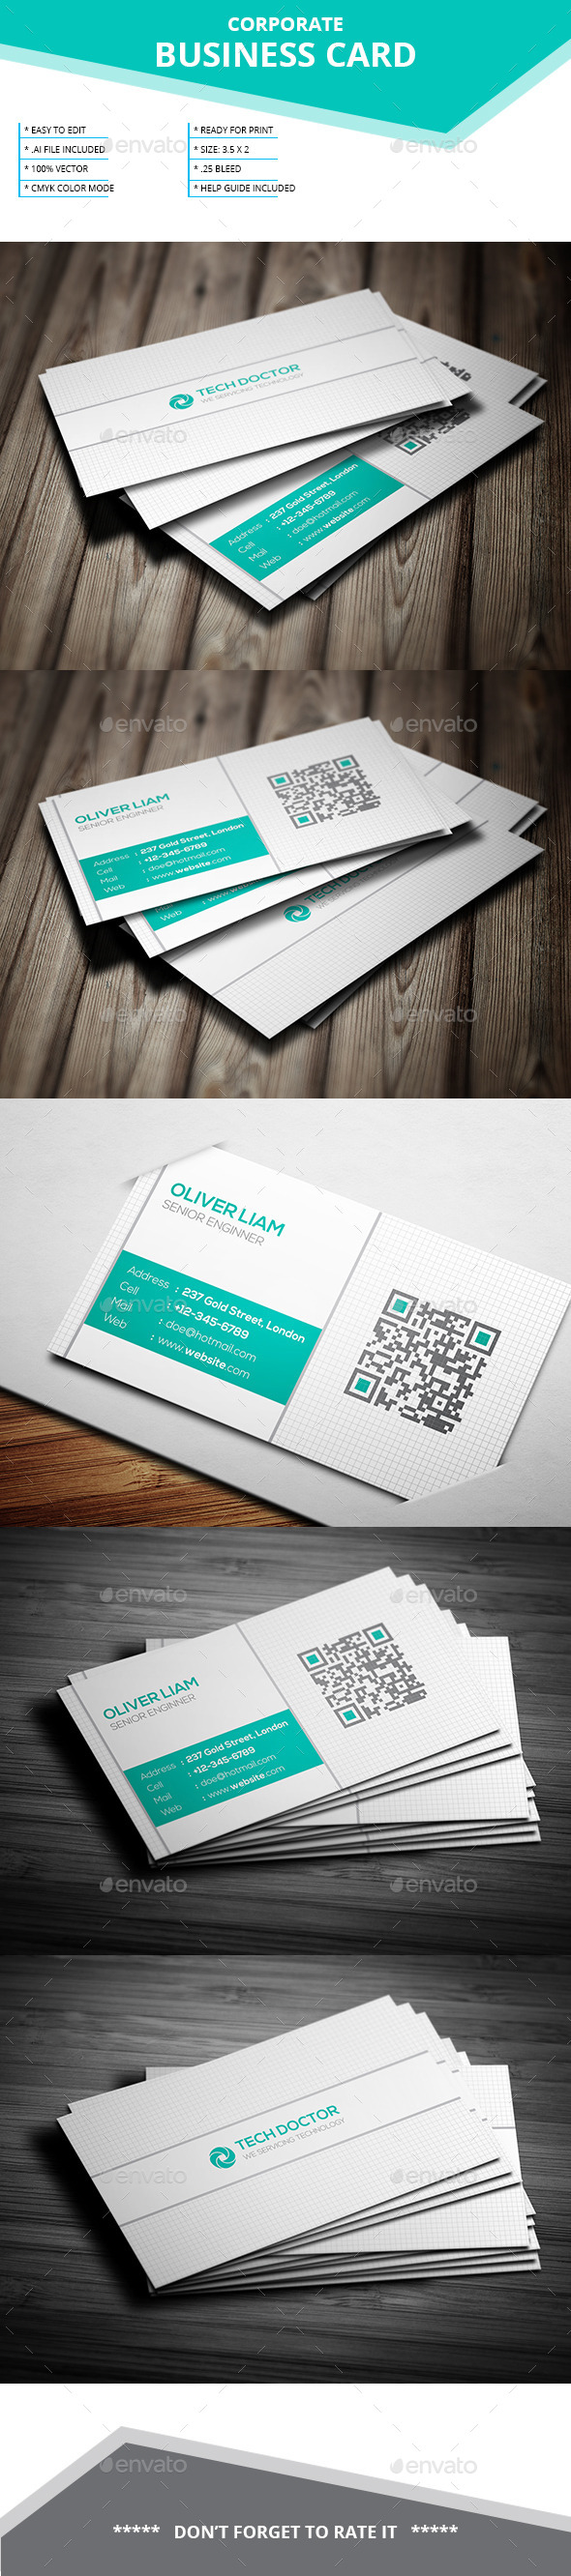 Corporate Business Card _ SL-28 - Business Cards Print Templates